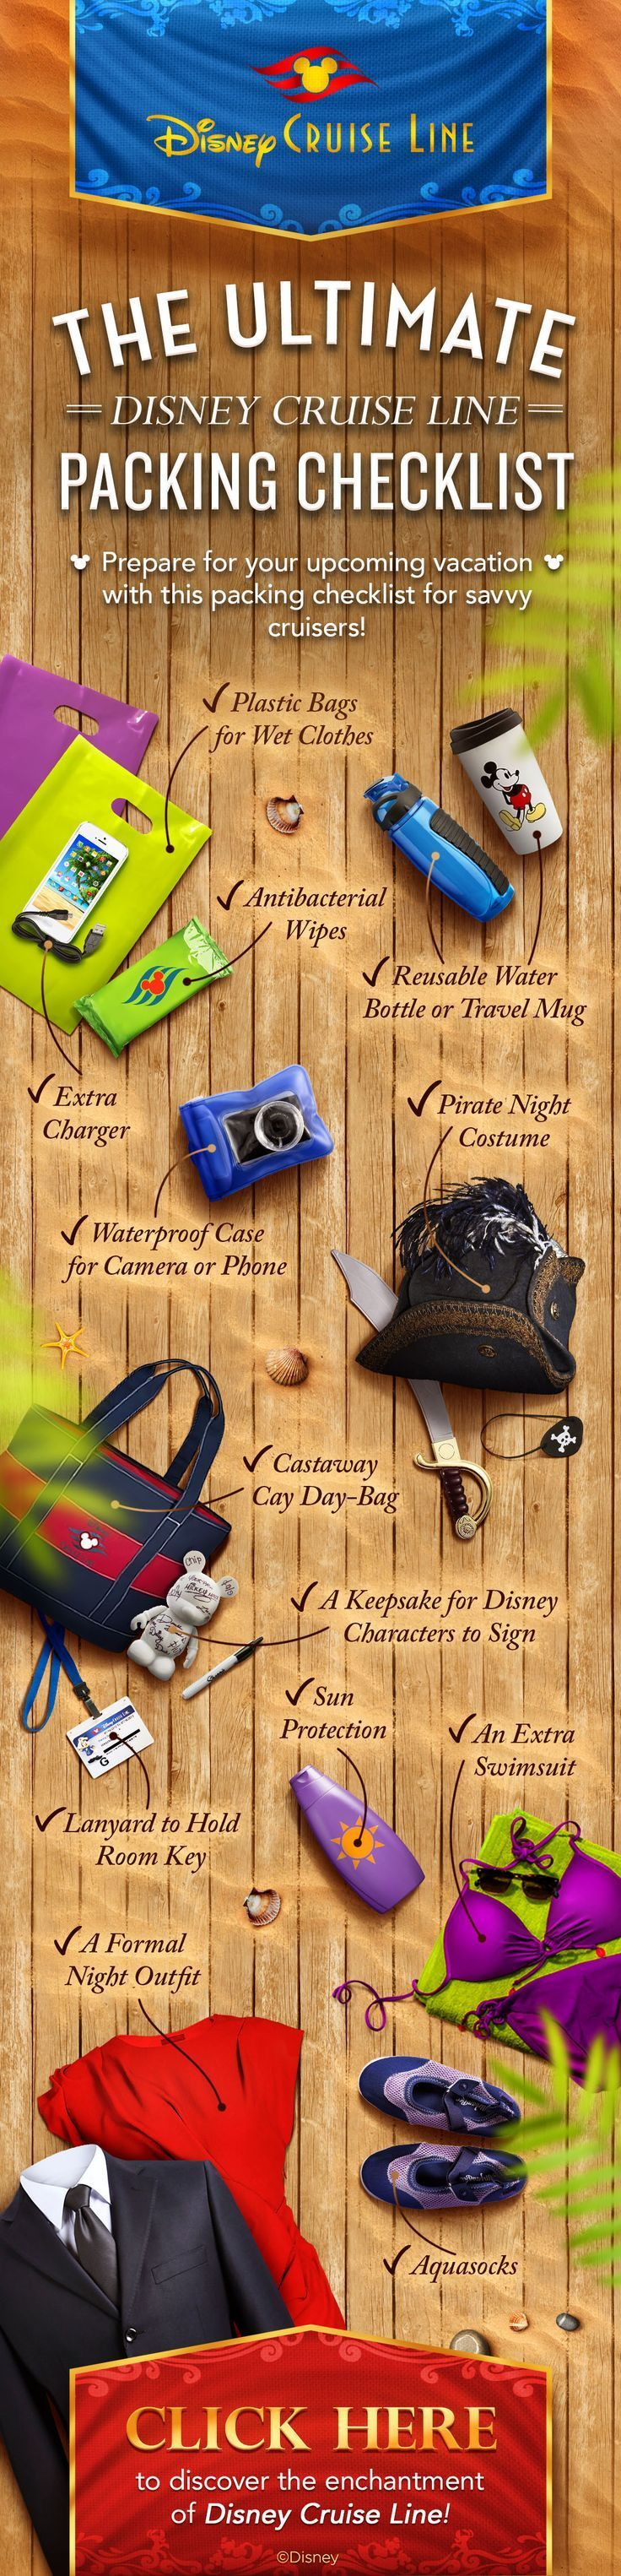 Essentials to pack for your Disney Cruise! Ready to sail? Contact me at www.swawtraveldenise.com!